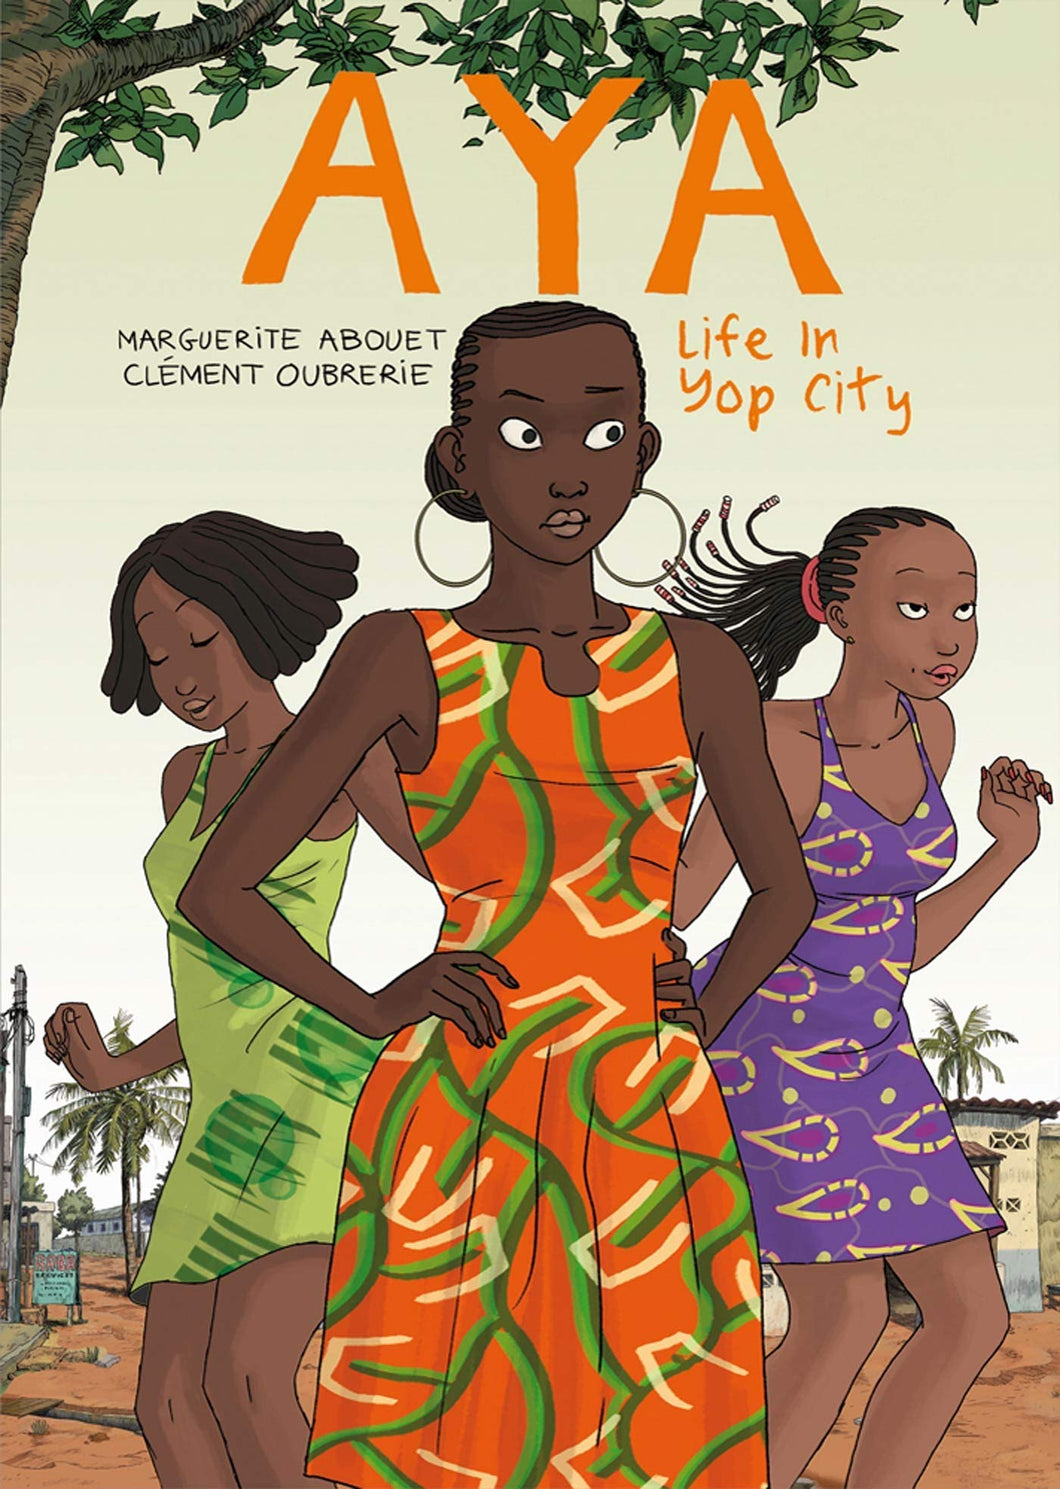 Aya: Life In Yop City [Marguerite Abouet & Clément Oubrerie]